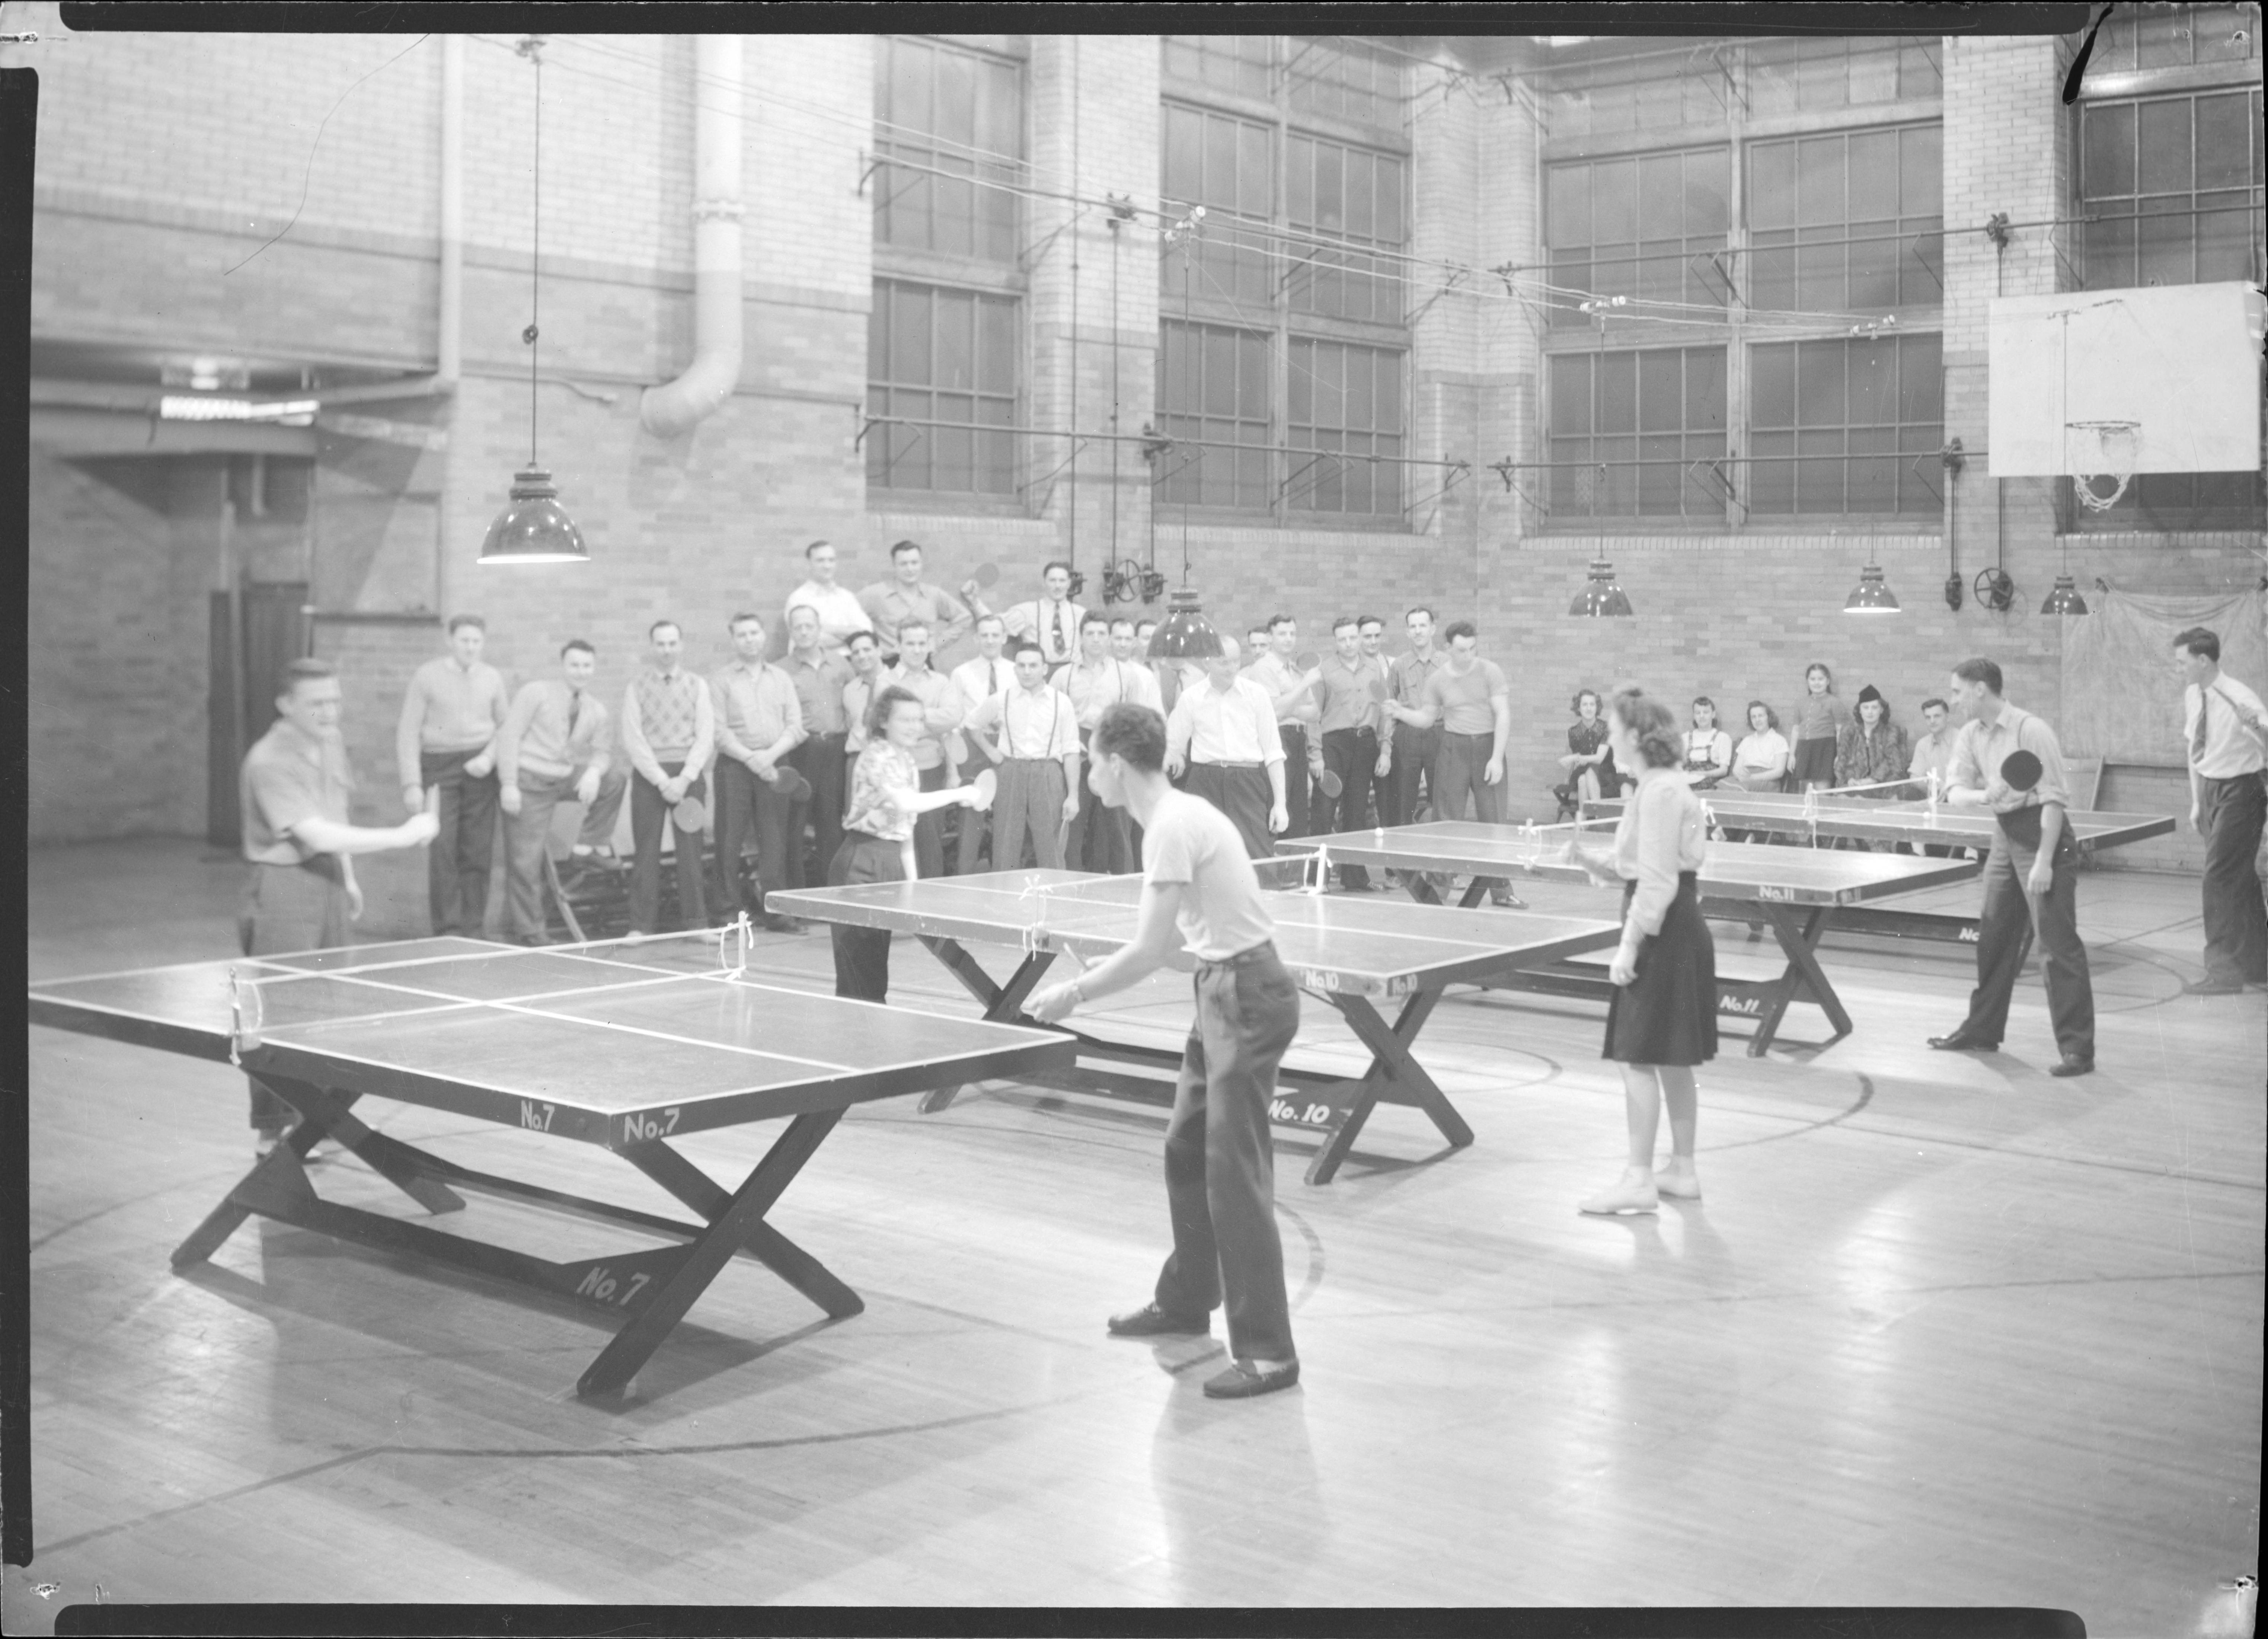 <table class=&quot;lightbox&quot;><tr><td colspan=2 class=&quot;lightbox-title&quot;>Table Tennis Tournament</td></tr><tr><td colspan=2 class=&quot;lightbox-caption&quot;>Four pairs of competitors take part in a table tennis tournament held in a Milwaukee gymnasium. </td></tr><tr><td colspan=2 class=&quot;lightbox-spacer&quot;></td></tr><tr class=&quot;lightbox-detail&quot;><td class=&quot;cell-title&quot;>Source: </td><td class=&quot;cell-value&quot;>From the Roman B. Kwaniewski Photographs Collection, Archives. University of Wisconsin-Milwaukee Libraries. <br /><a href=&quot;https://collections.lib.uwm.edu/digital/collection/mke-polonia/id/32109/rec/8&quot; target=&quot;_blank&quot;>University of Wisconsin-Milwaukee Libraries</a></td></tr><tr class=&quot;filler-row&quot;><td colspan=2>&nbsp;</td></tr></table>